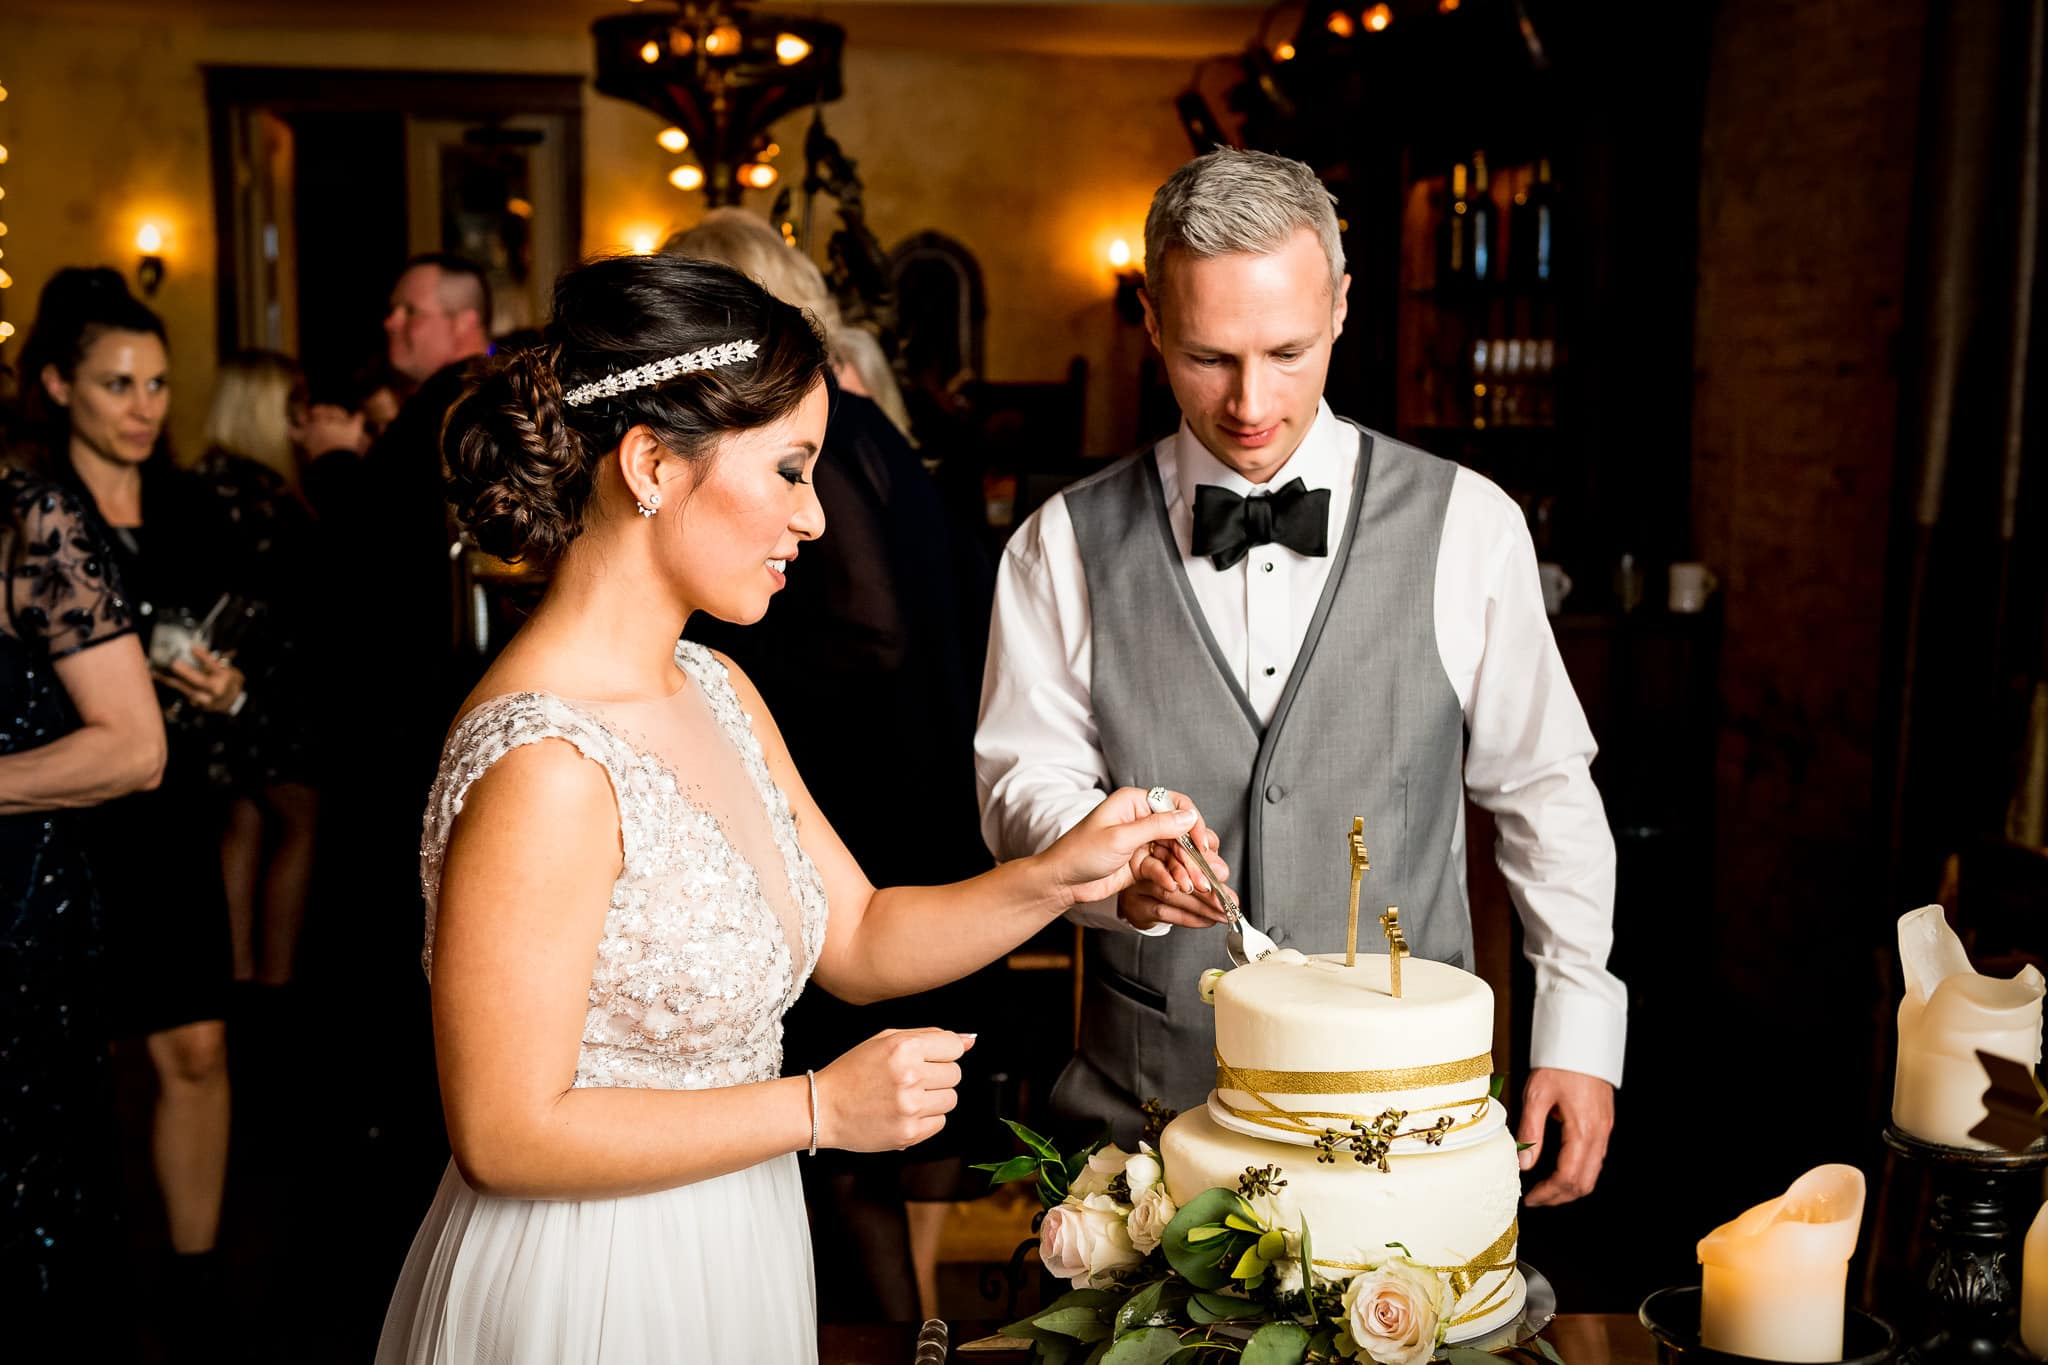 Bride and Groom cutting their cake in the River Room at Aster Cafe